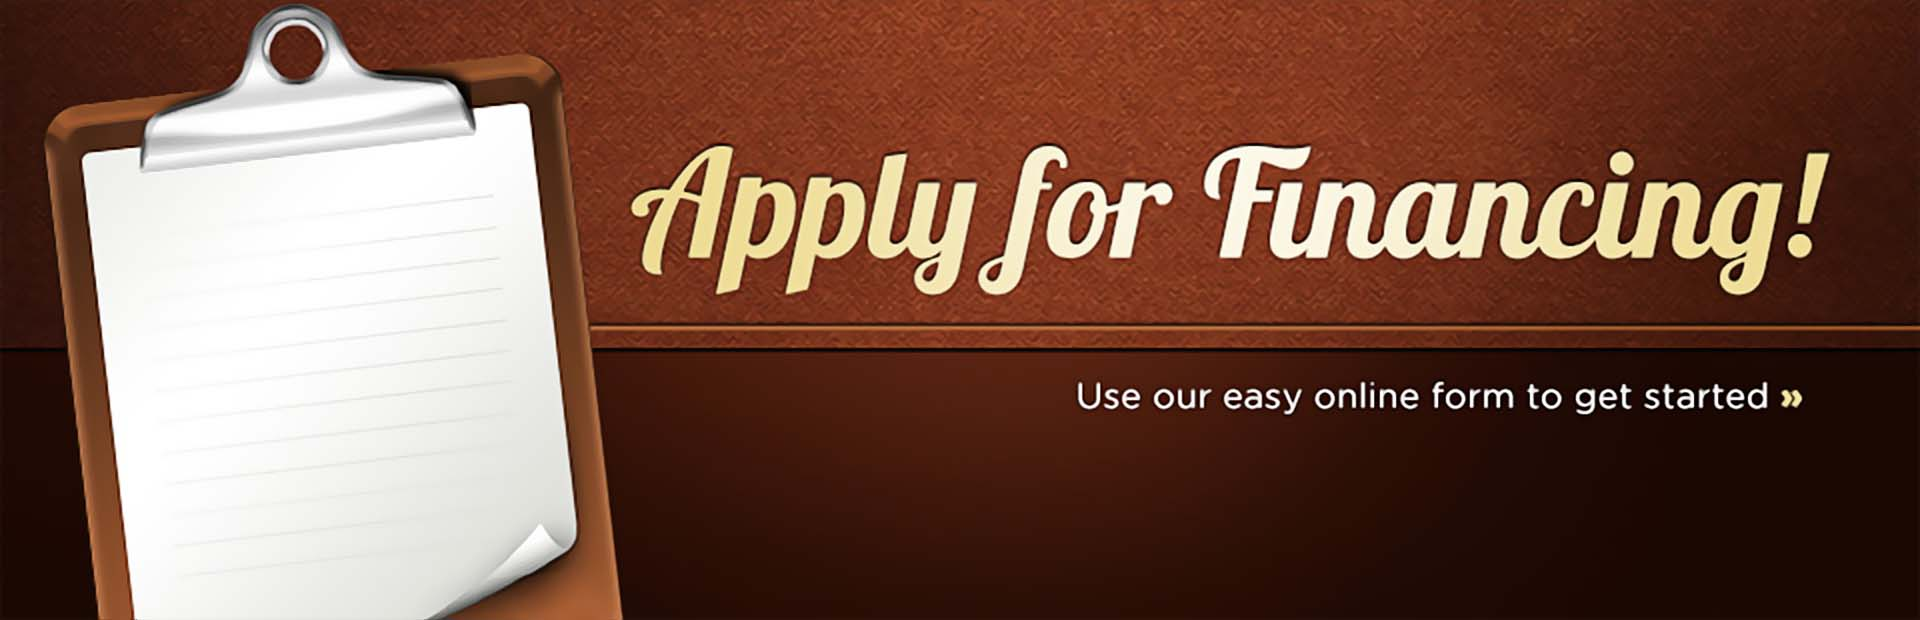 Apply for financing! Click here to use our easy online form.